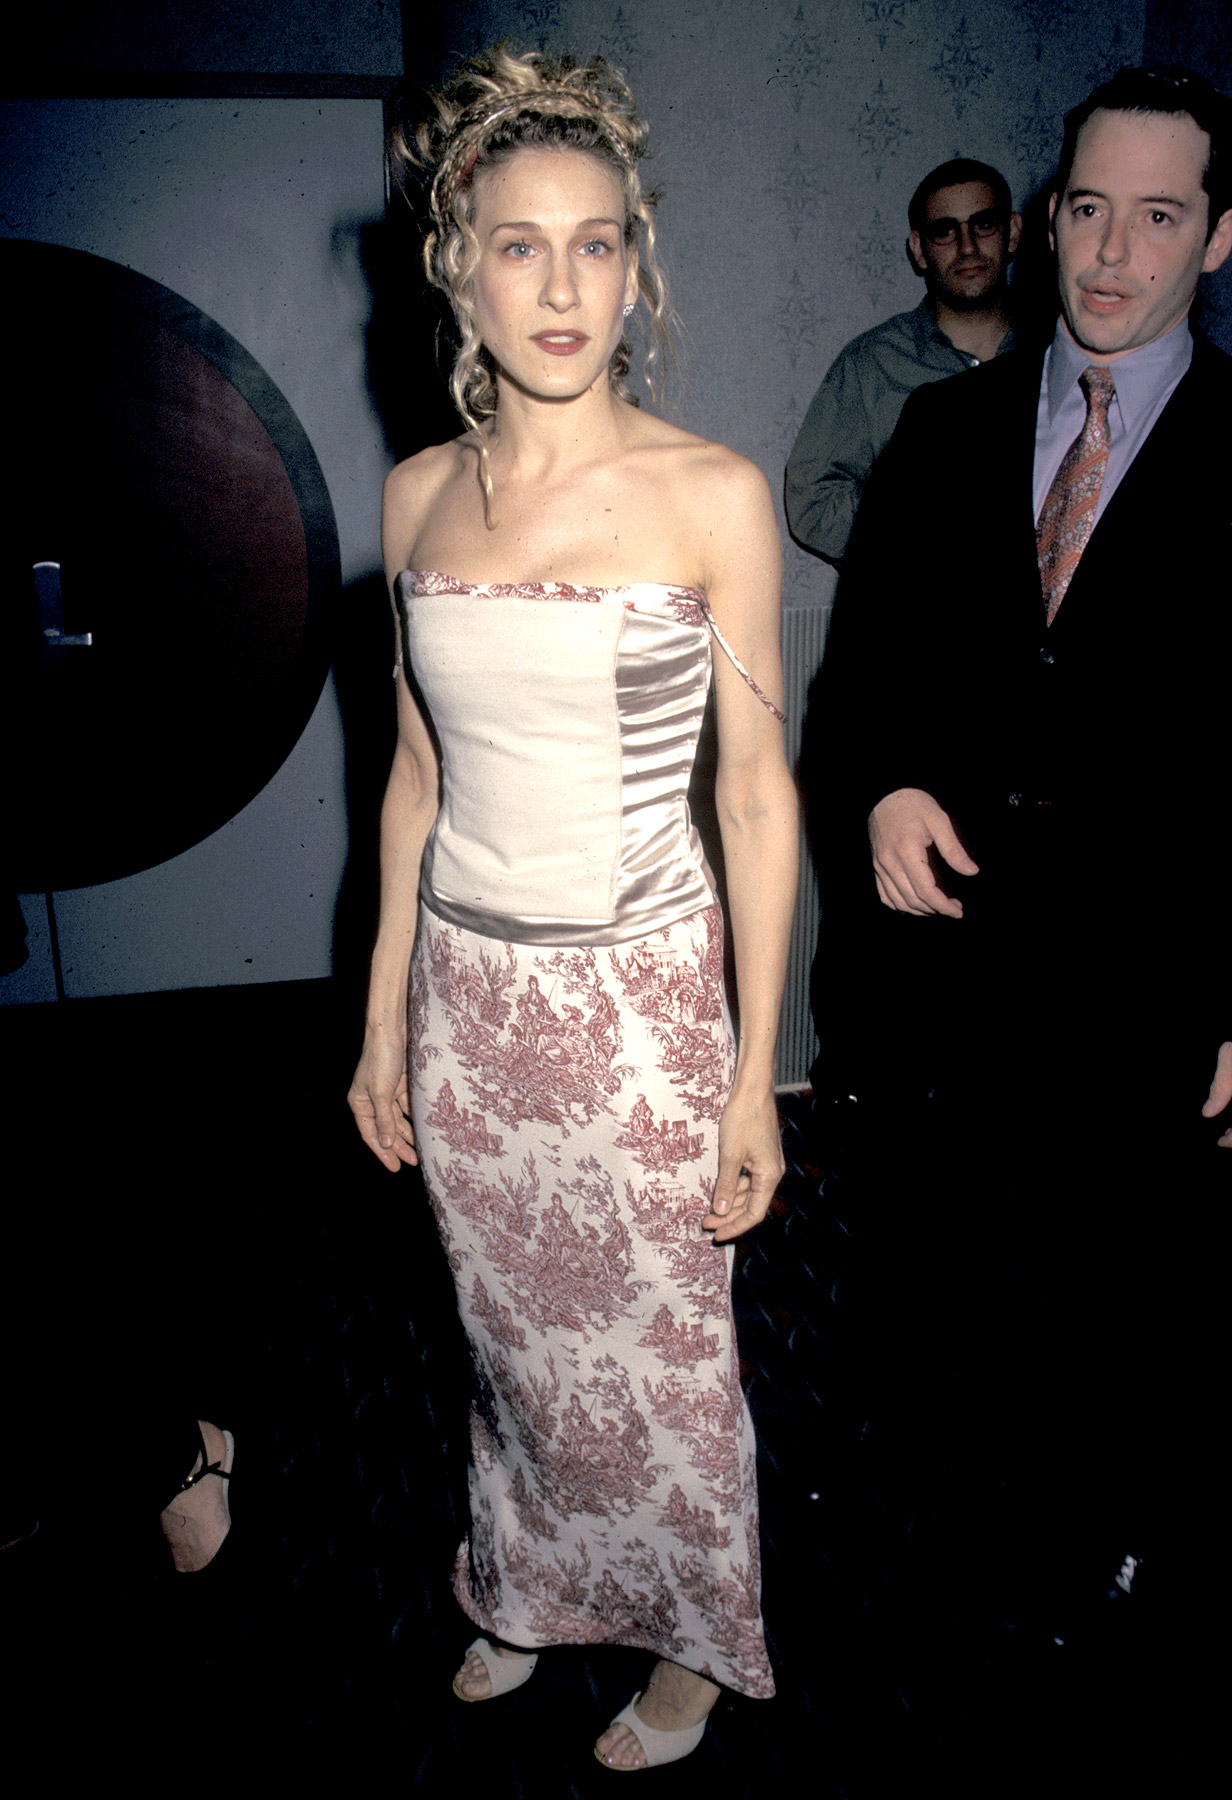 Right before she became a veritable household name and fashion icon, Parker attended the premiere screening of the pilot for Sex and the City on June 2, 1998. Wearing a blush-colored corset-style strapless top with a baroque-printed skirt, the show's Carrie Bradshaw definitely stood out.